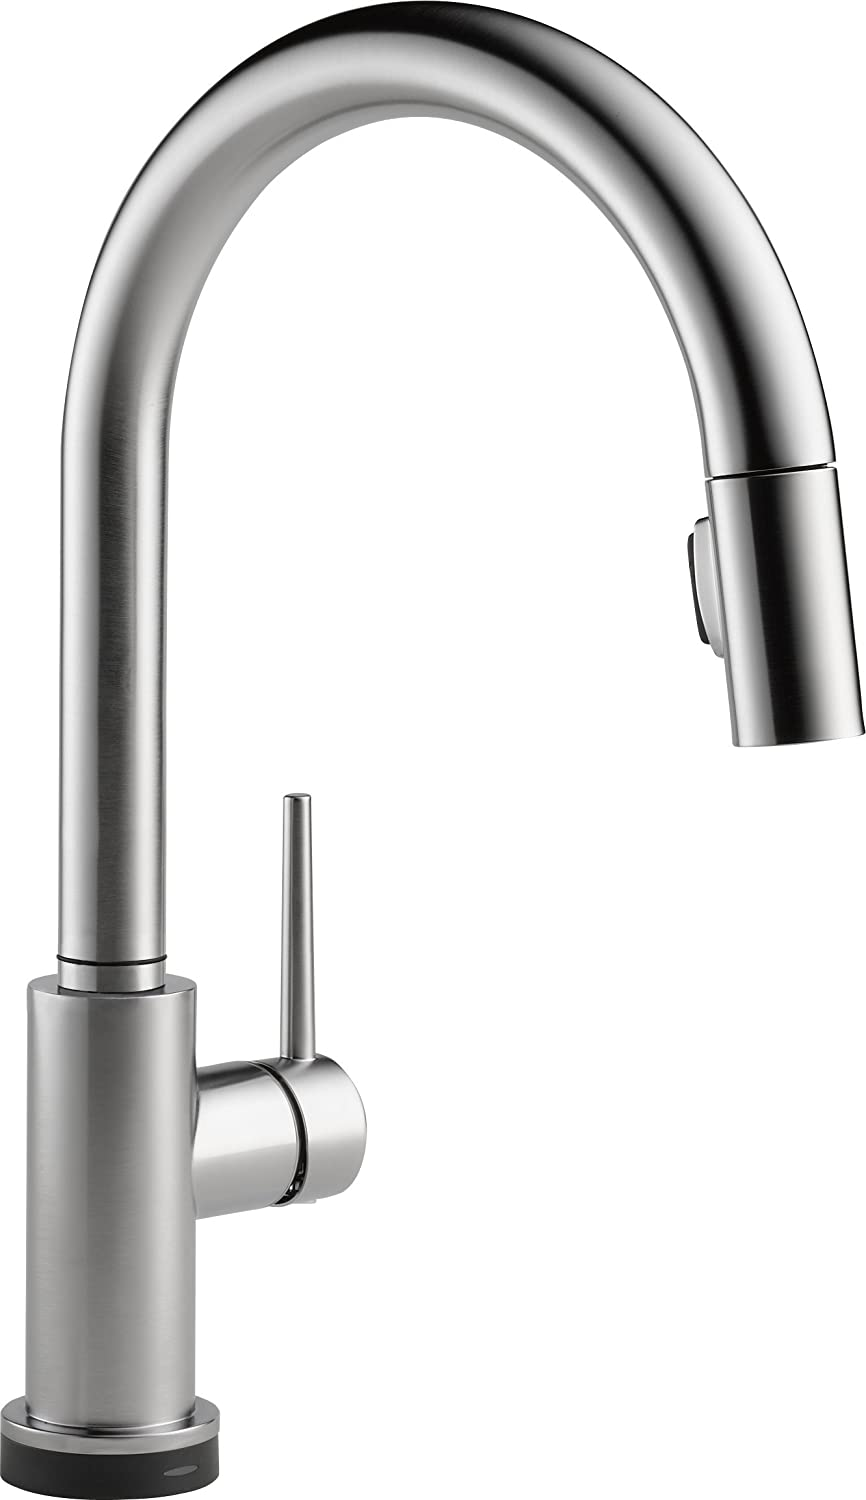 Delta Faucet Trinsic Single Handle Touch Kitchen Sink Faucet With Pull Down Sprayer Touch2o Technology And Magnetic Docking Spray Head Arctic Stainless 9159t Ar Dst Touch On Kitchen Sink Faucets Amazon Com